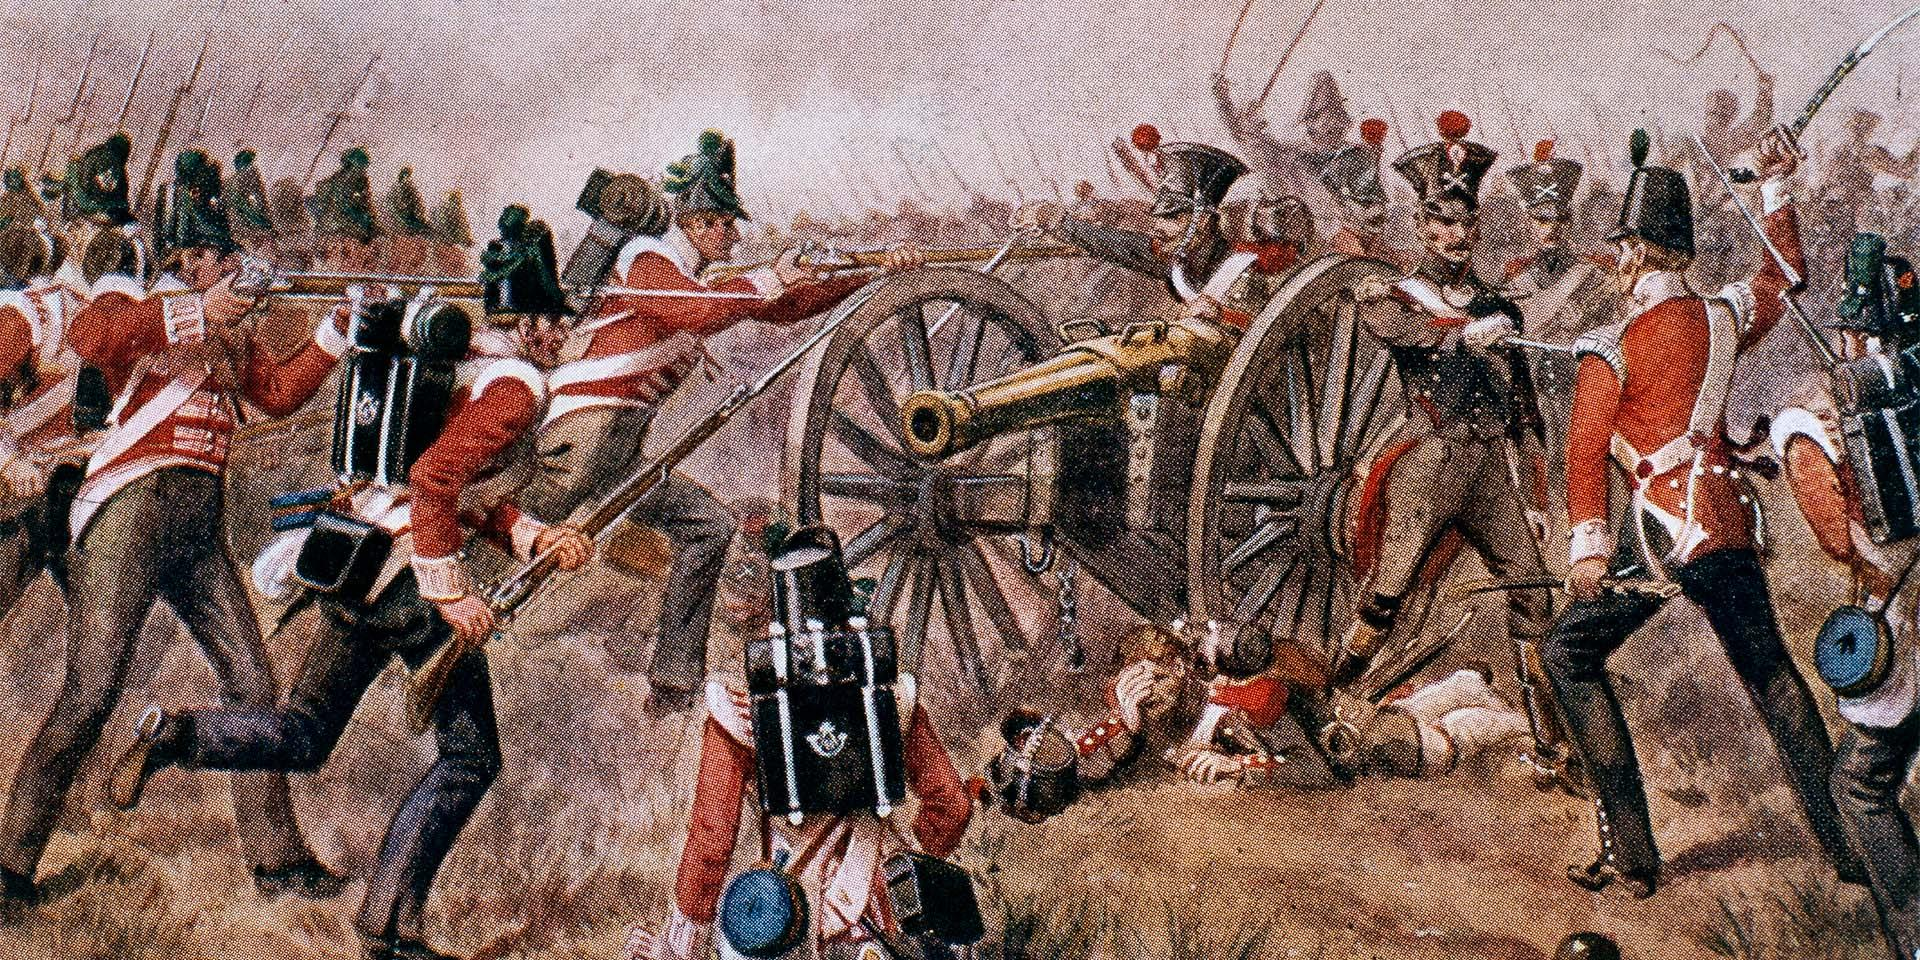 The 43rd (Monmouthshire Light Infantry) Regiment of Foot at Sabagul in the Peninsula, 1811